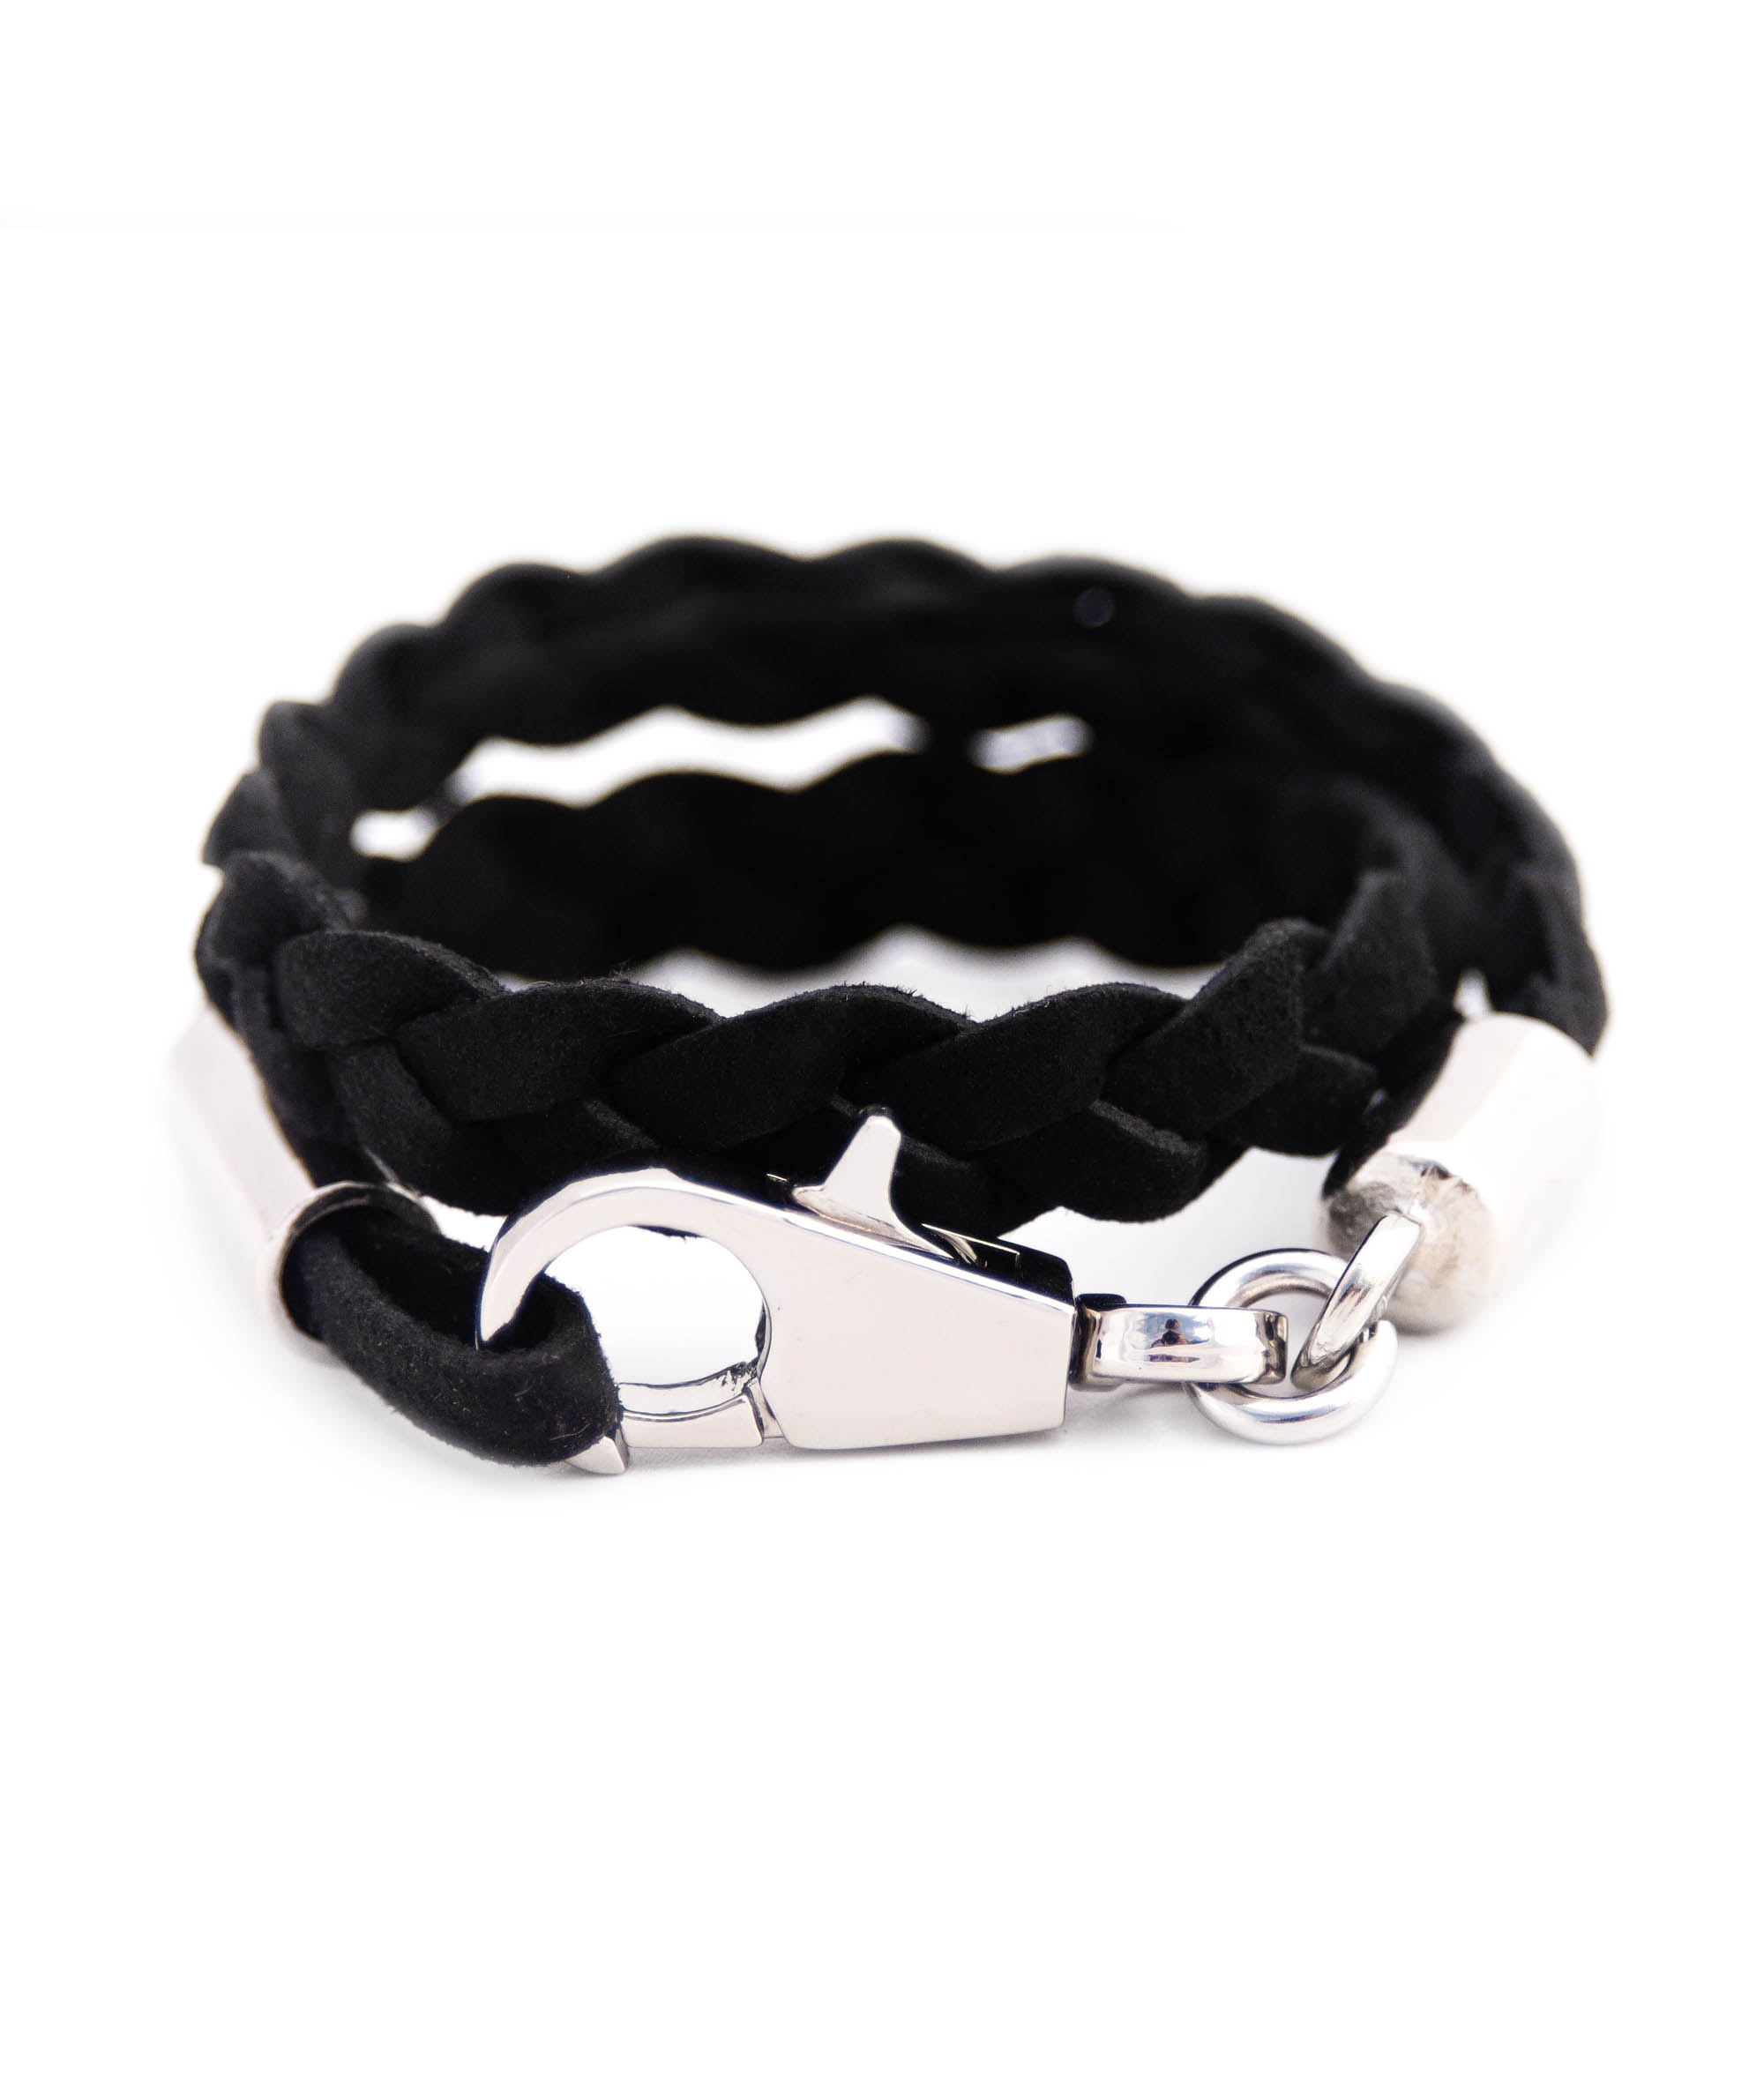 bracelet diamond for mens black diamondstud men